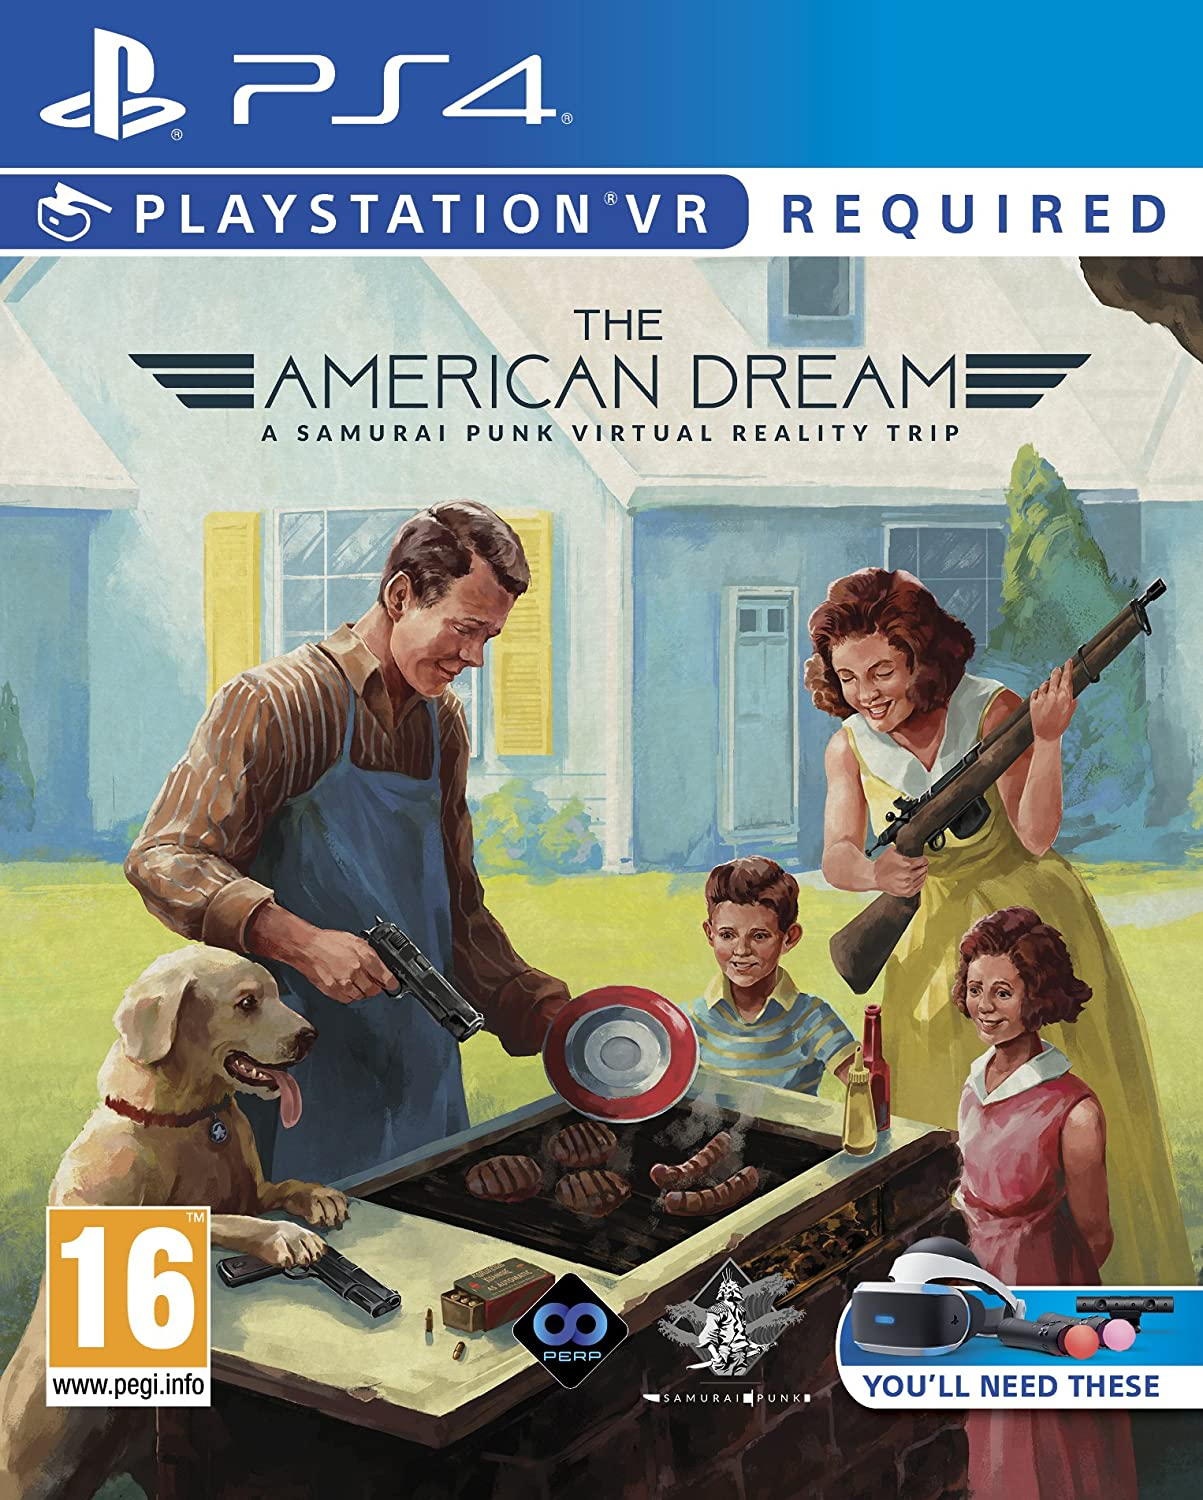 PS4 GAME THE AMERICAN DREAM VR